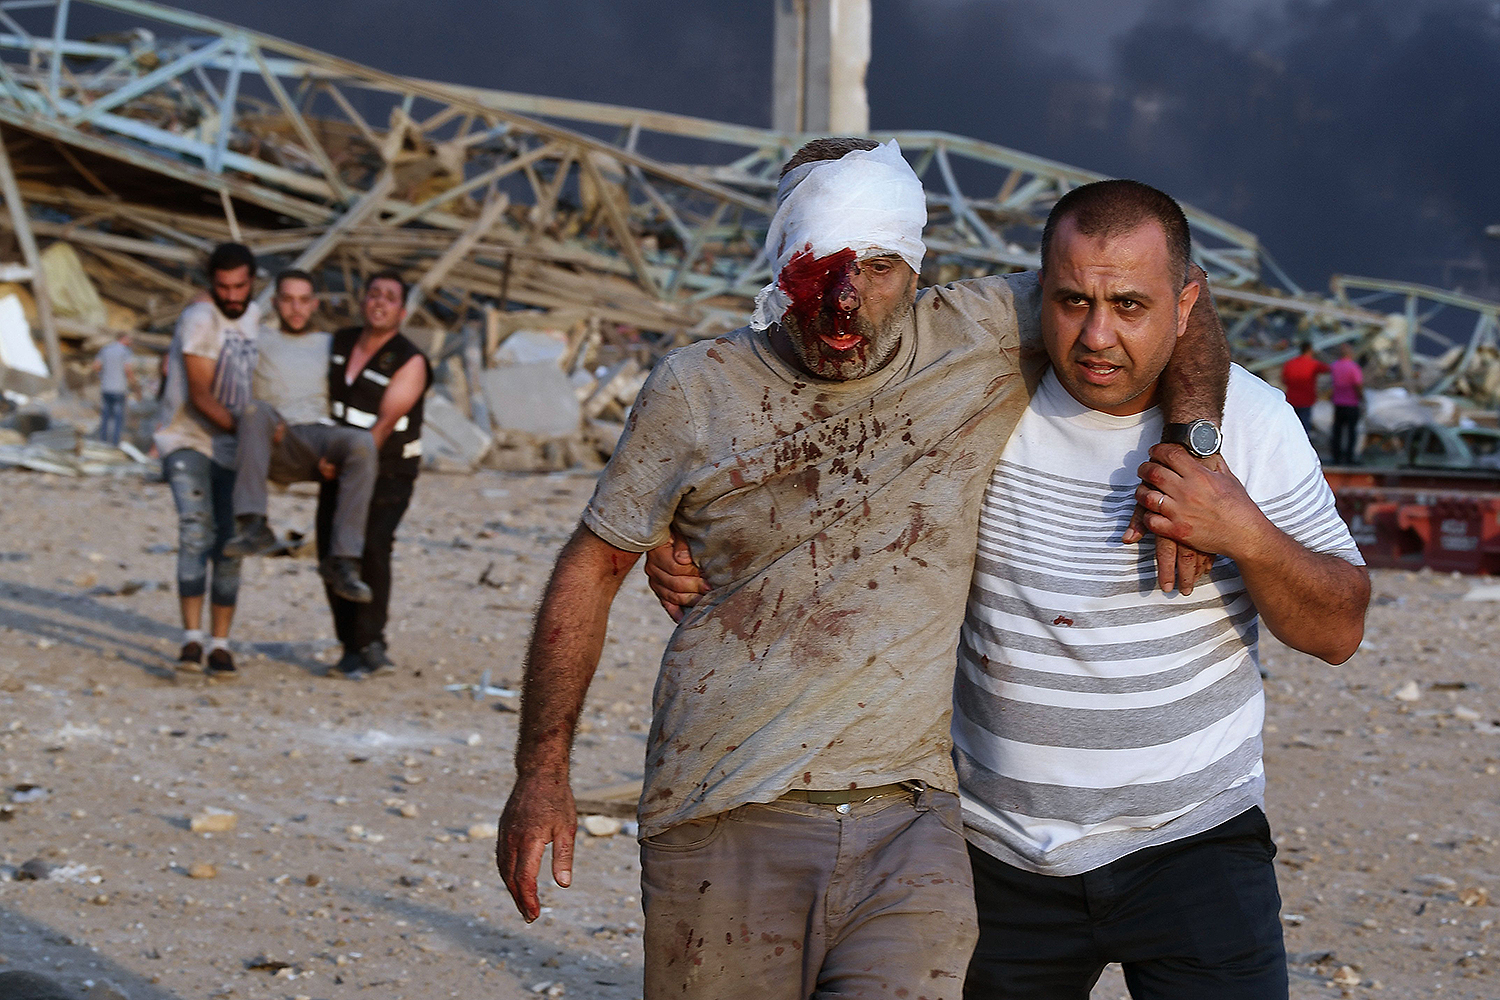 Wounded men are evacuated following an explosion at the Beirut port on Aug. 4. AFP via Getty Images